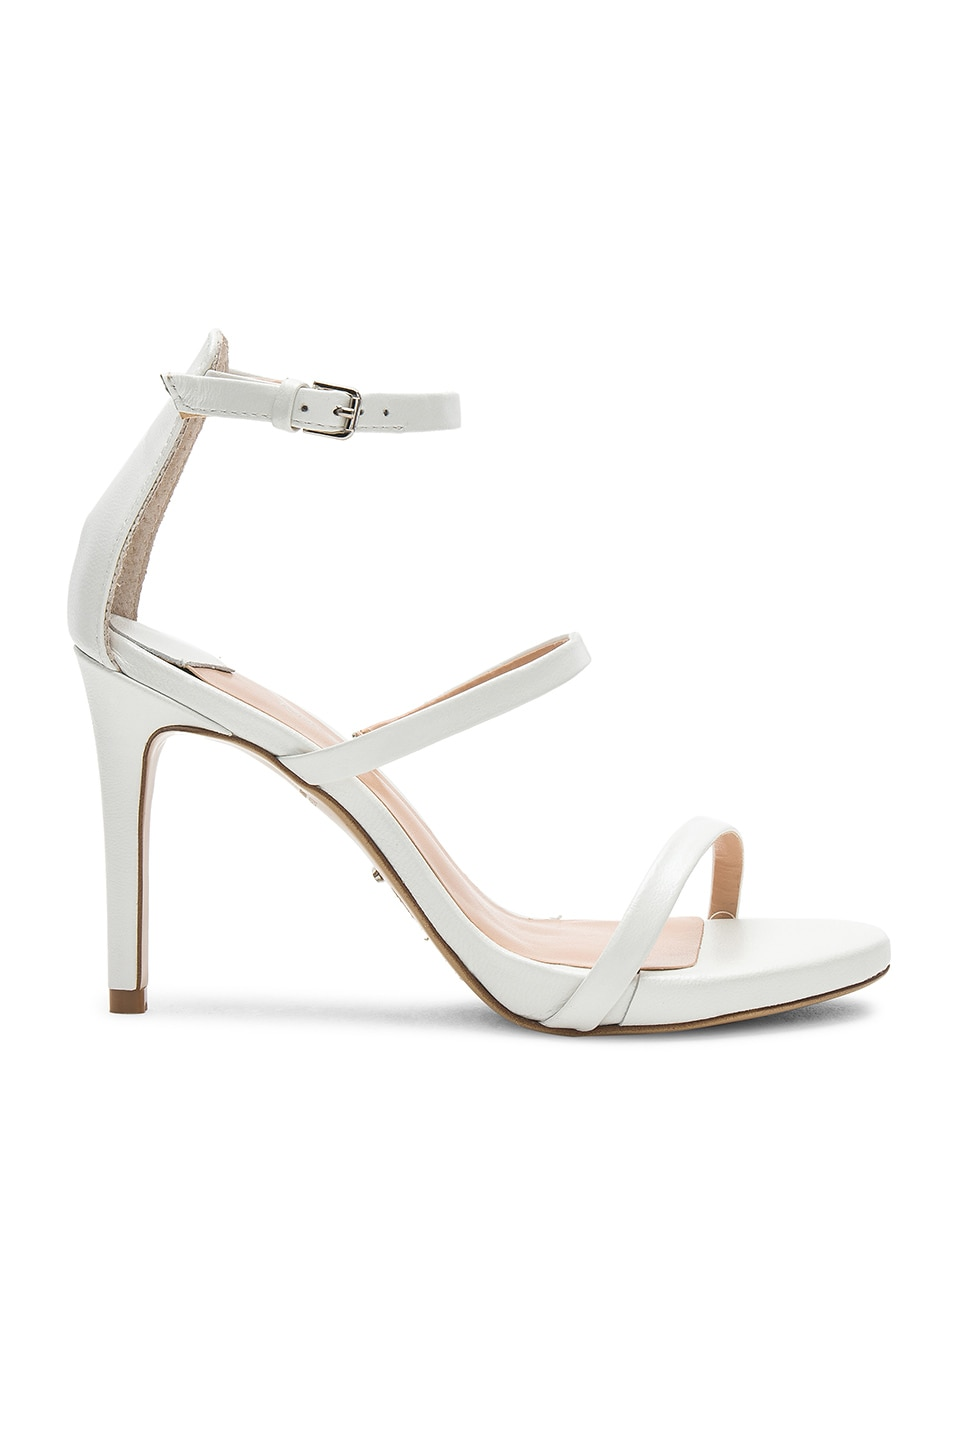 Tony Bianco Carey Heel in White Pearl